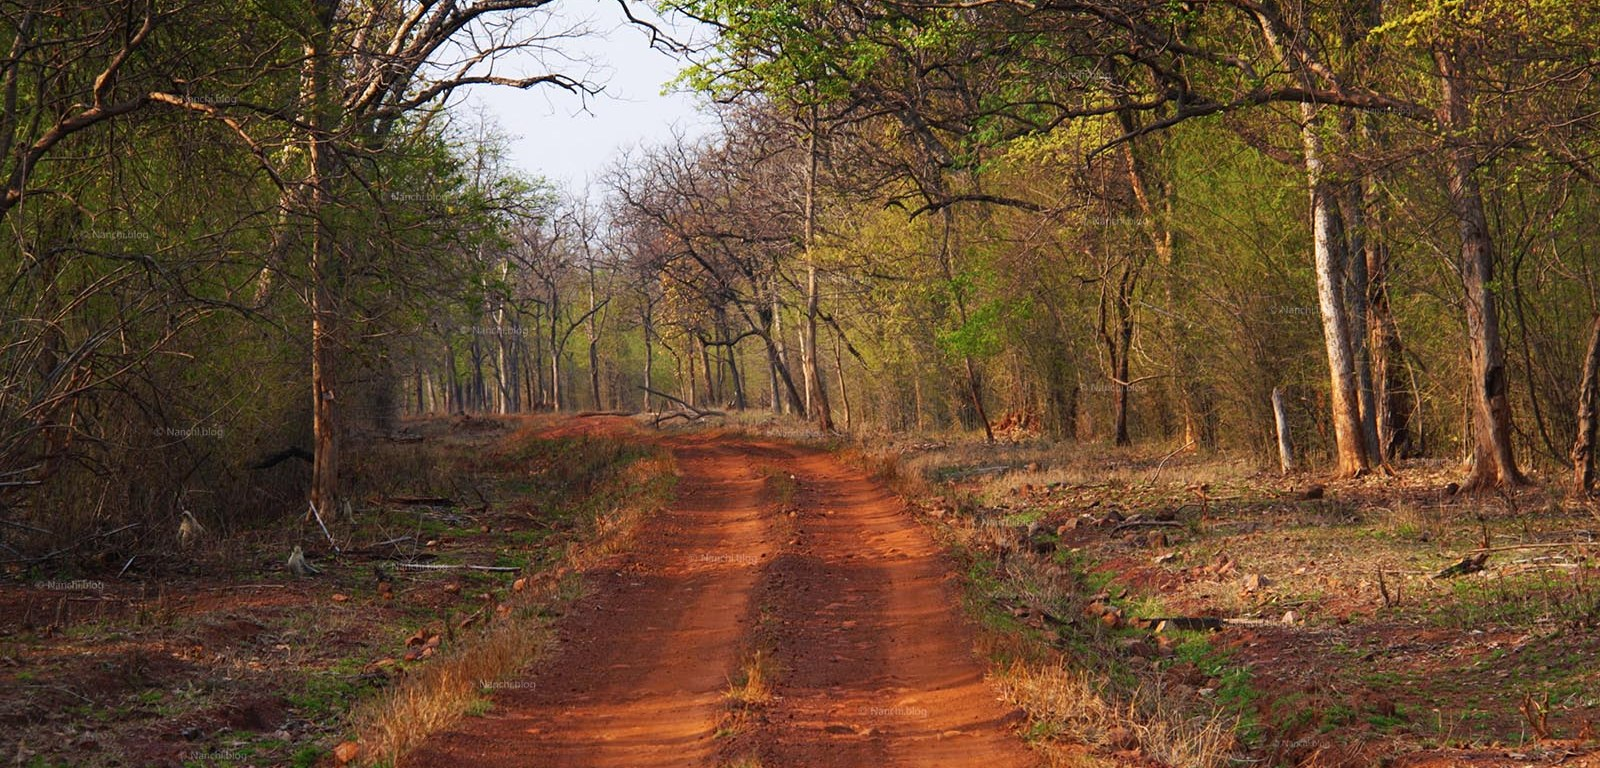 Evening Safari Path,Tadoba Andhari Tiger Reserve, Chandrapur